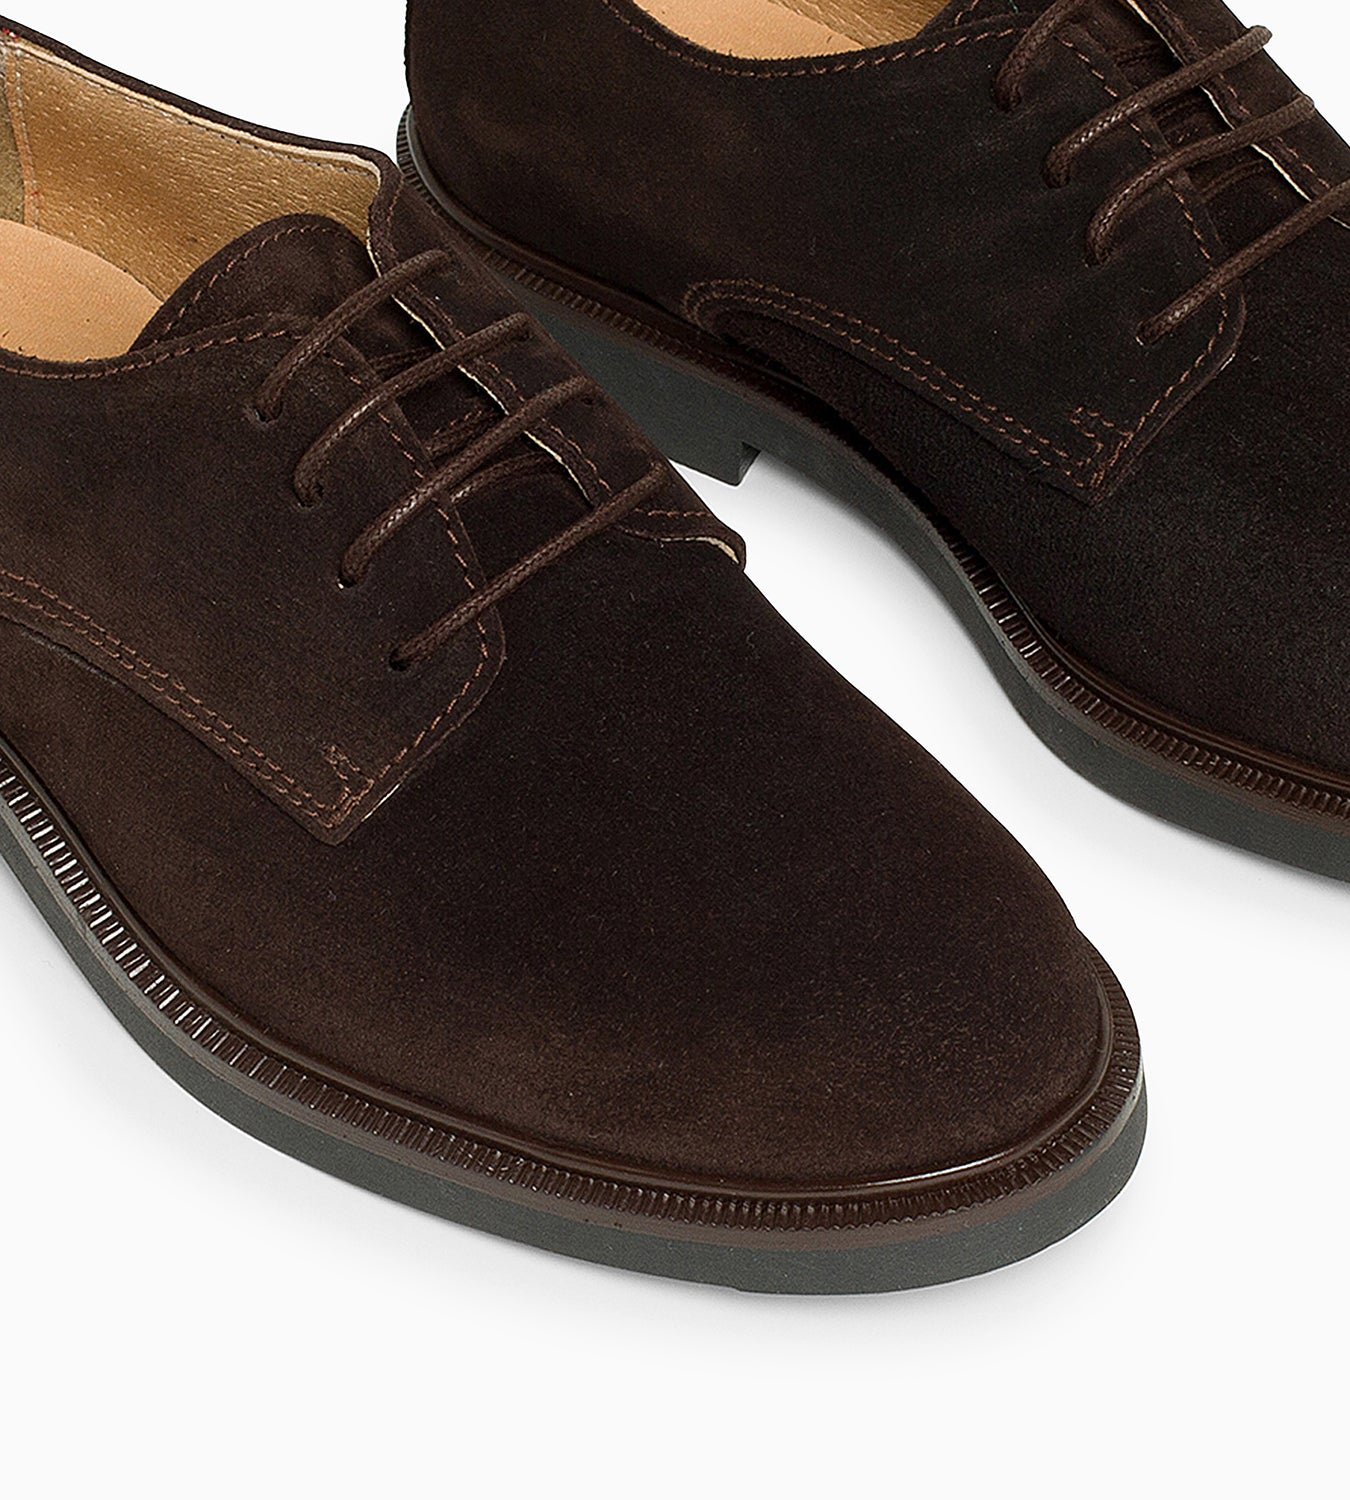 Blucher Oxford Serraje Marrón - Ganzitos